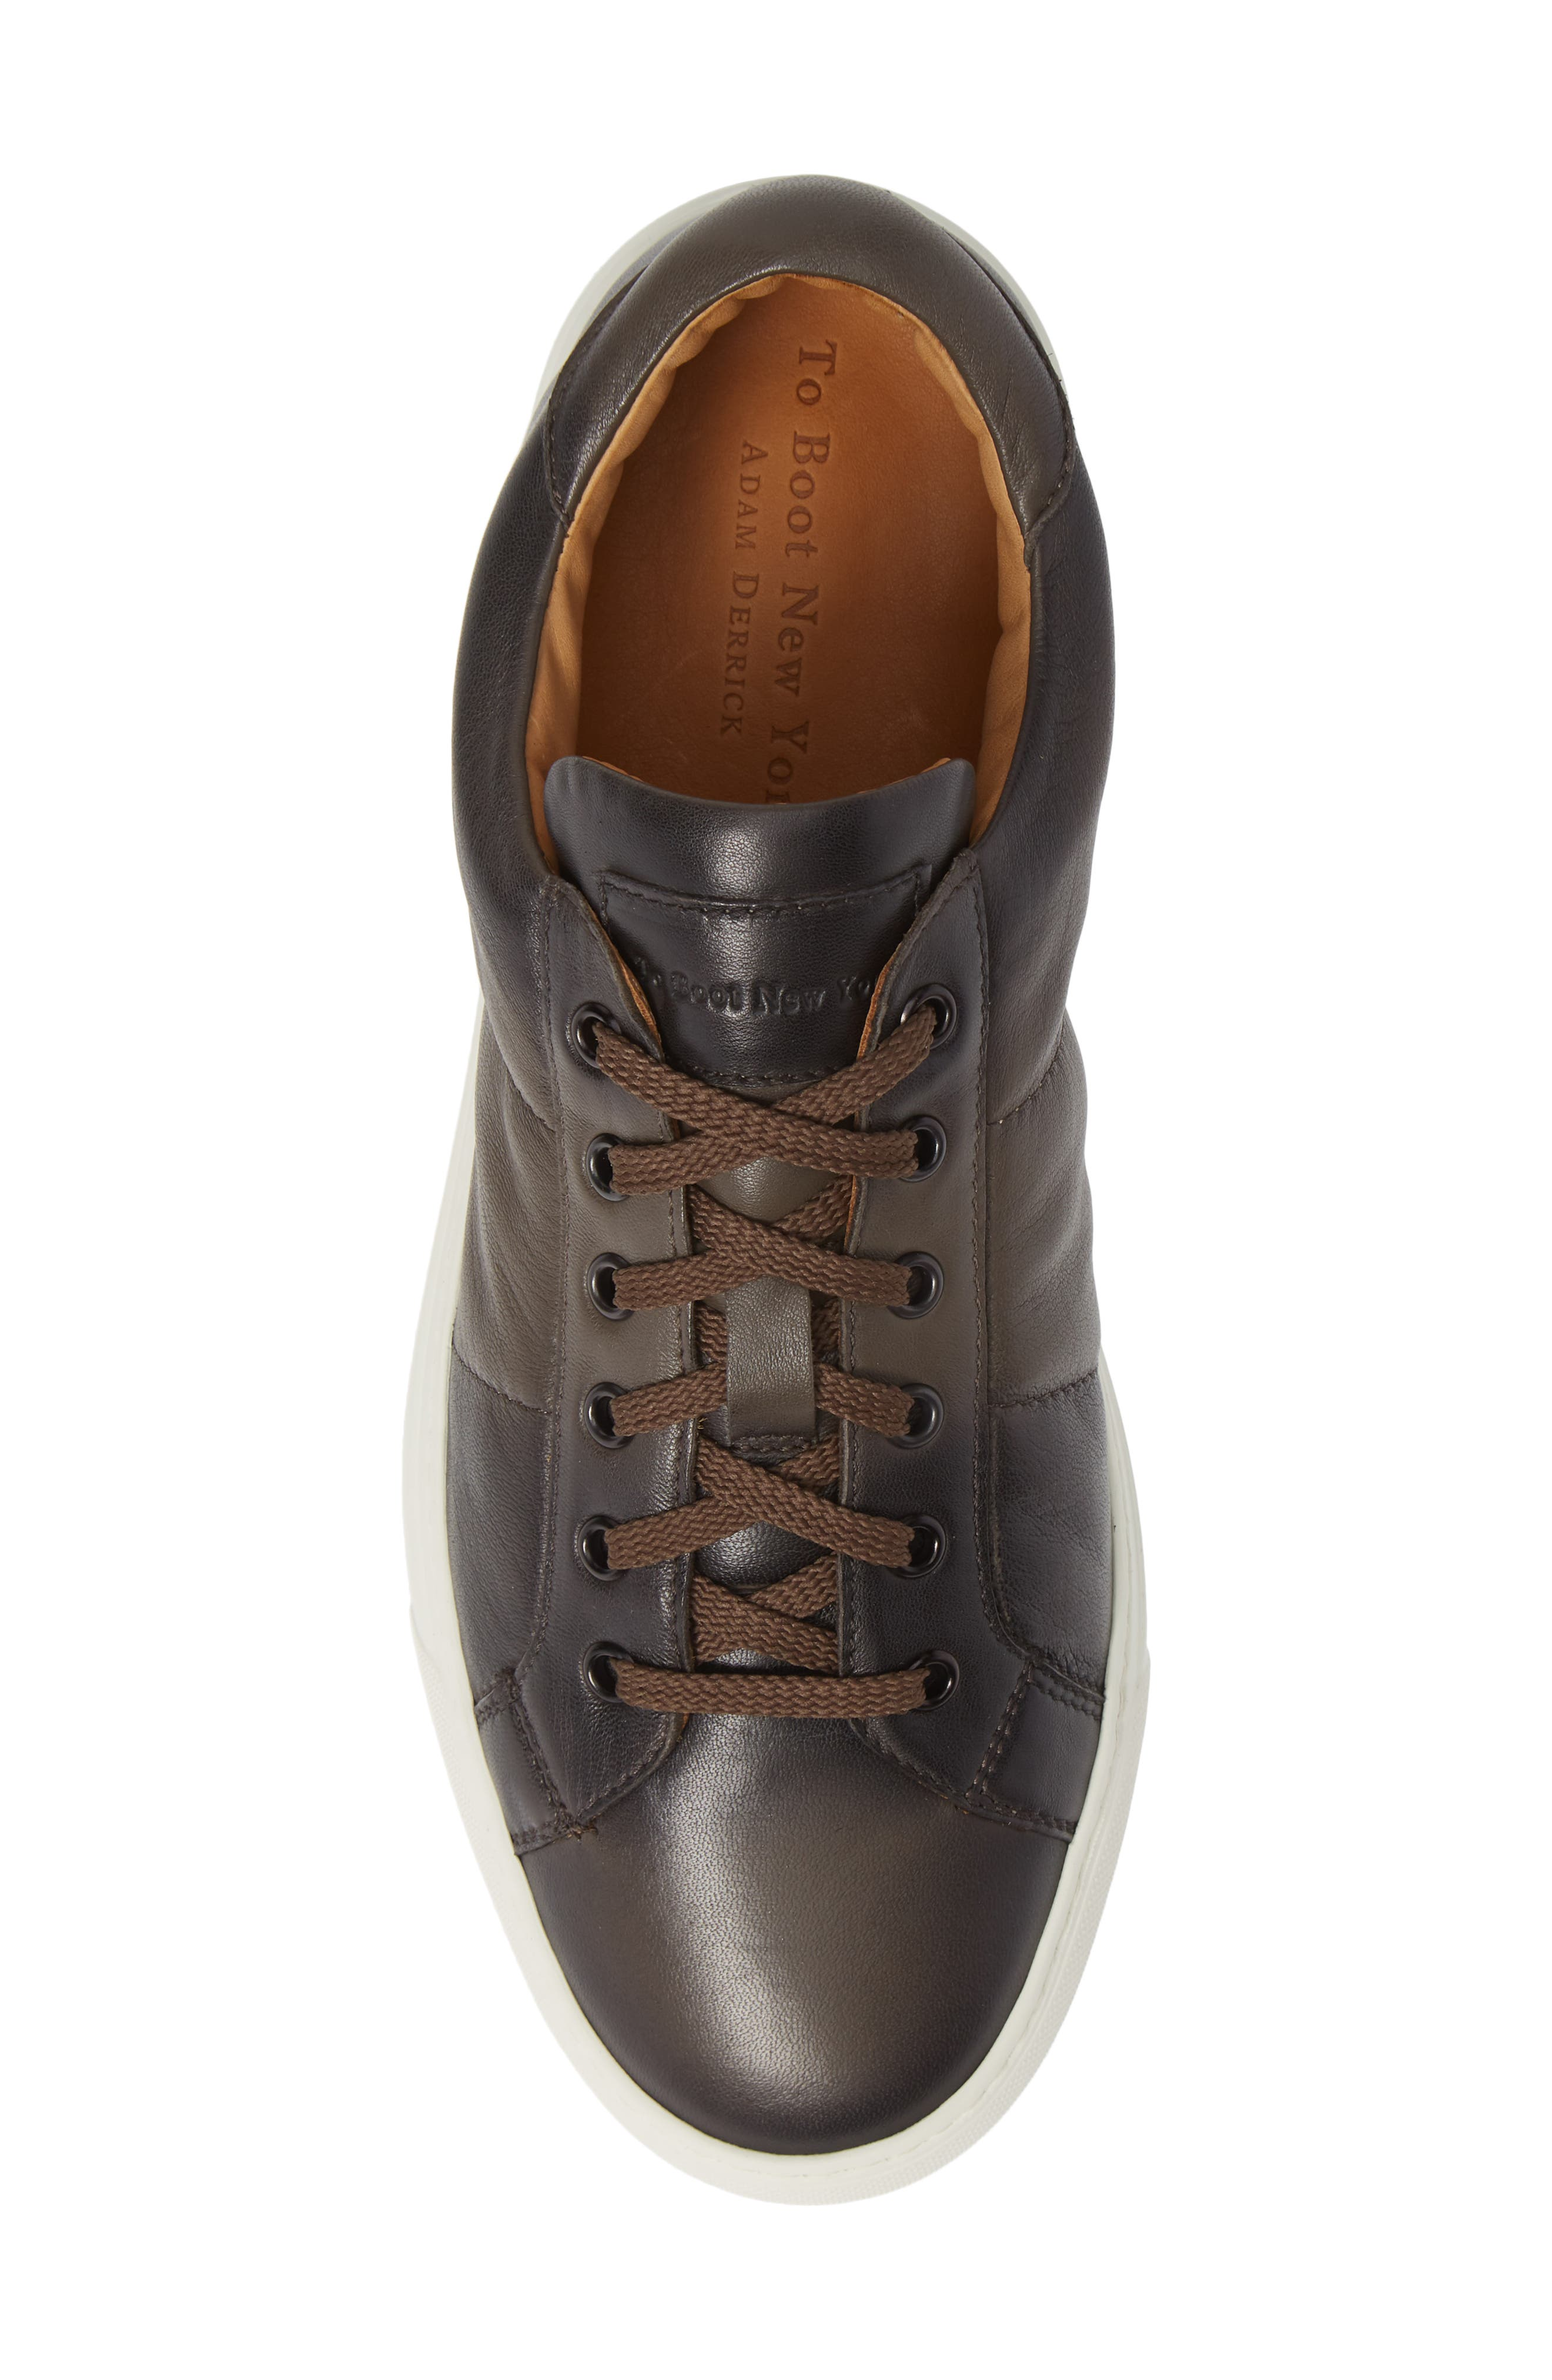 Colton Sneaker,                             Alternate thumbnail 5, color,                             TAUPE GREY LEATHER